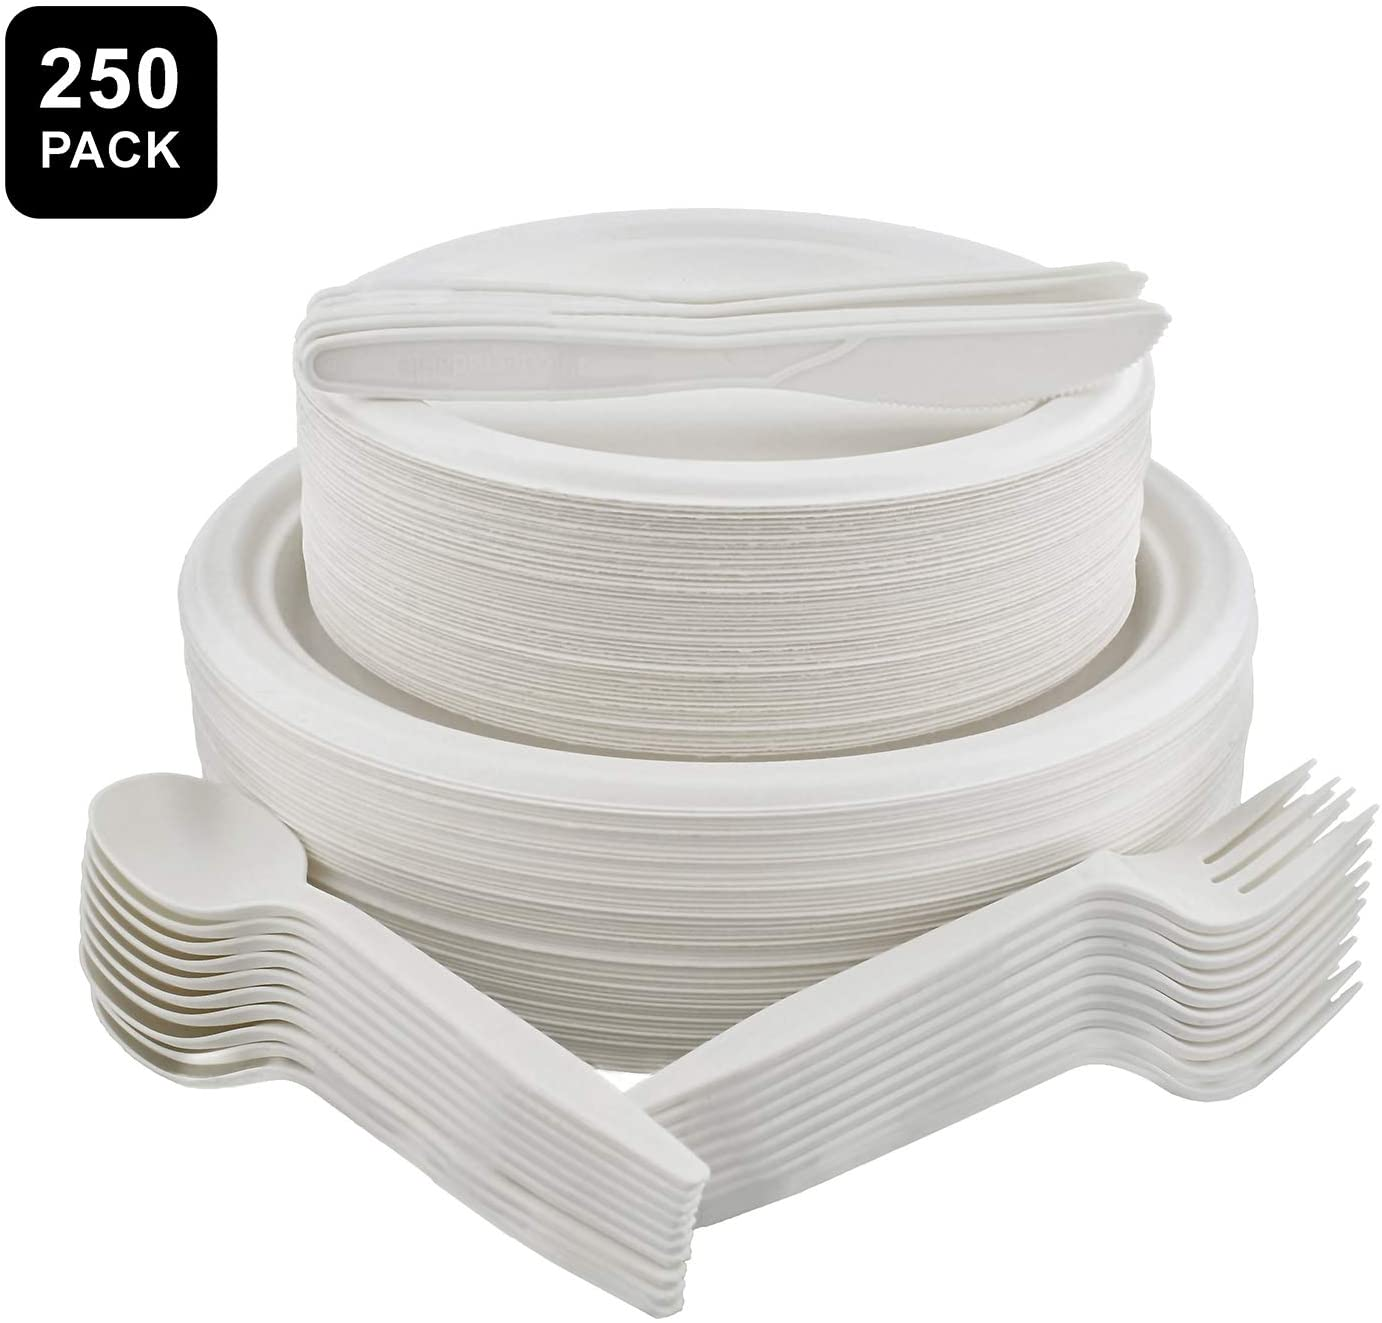 Spec101 Disposable Dinnerware Set 250pc for 50 Guests, Bright White, Sugarcane Disposable Plates and Utensils Bulk Kit